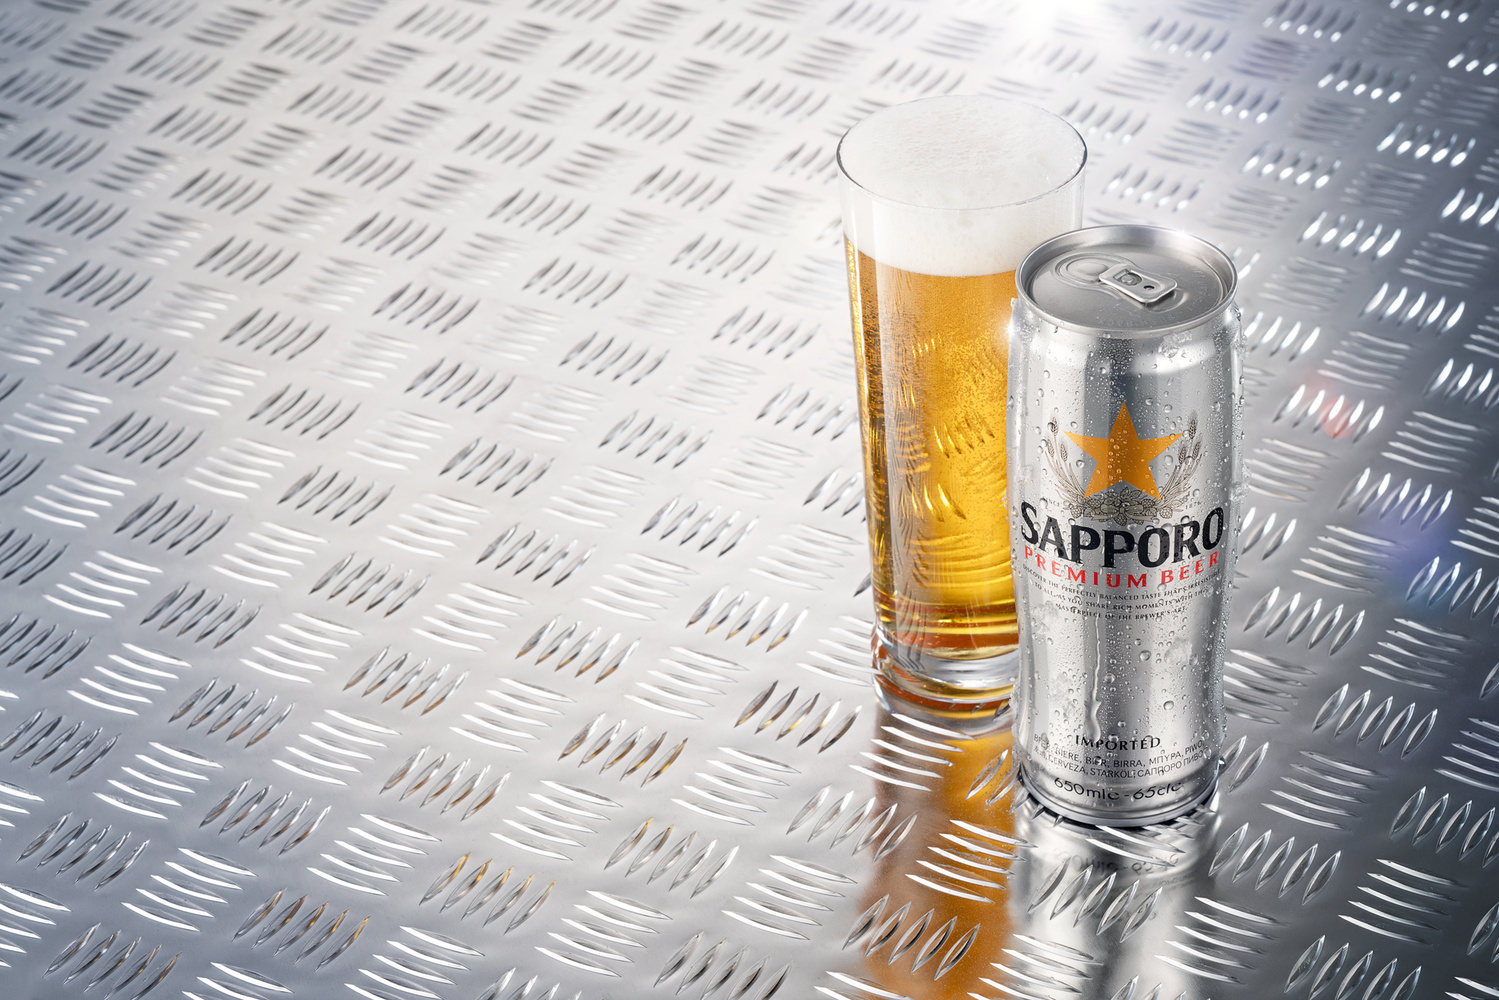 Sapporo beer by Piotr Maksymowicz